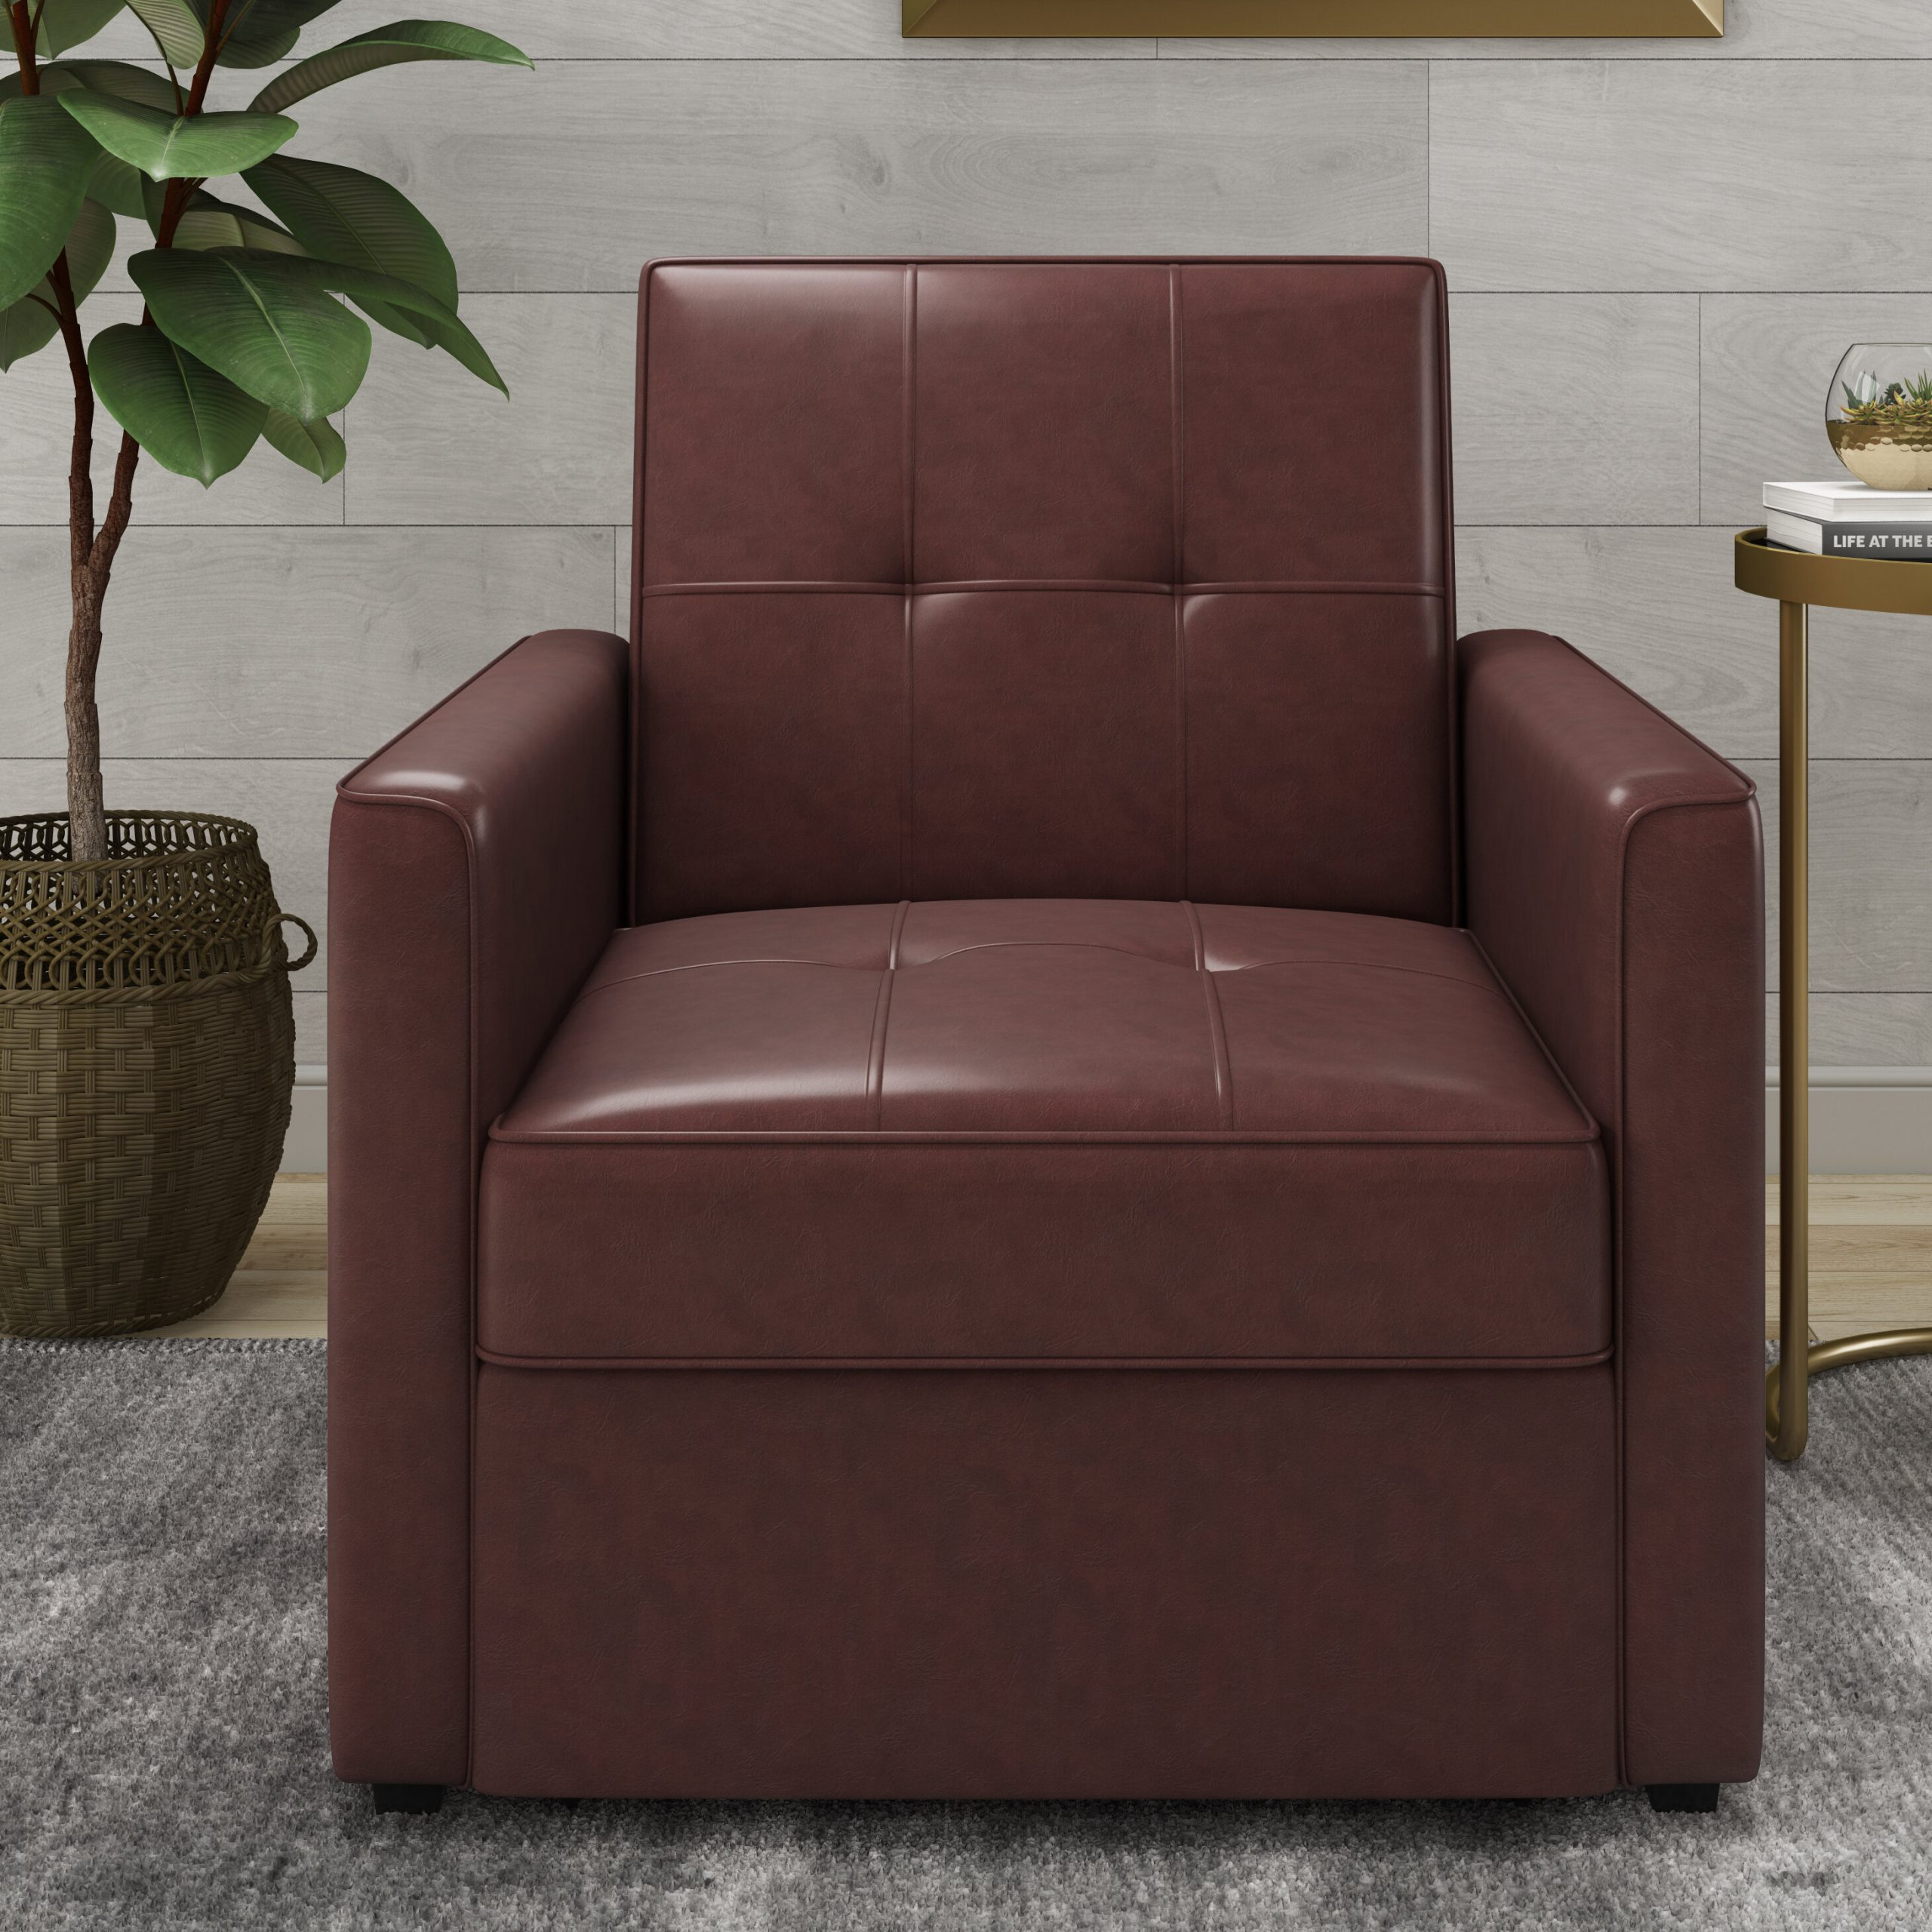 Abdiwali Convertible Chair Within Perz Tufted Faux Leather Convertible Chairs (View 11 of 15)